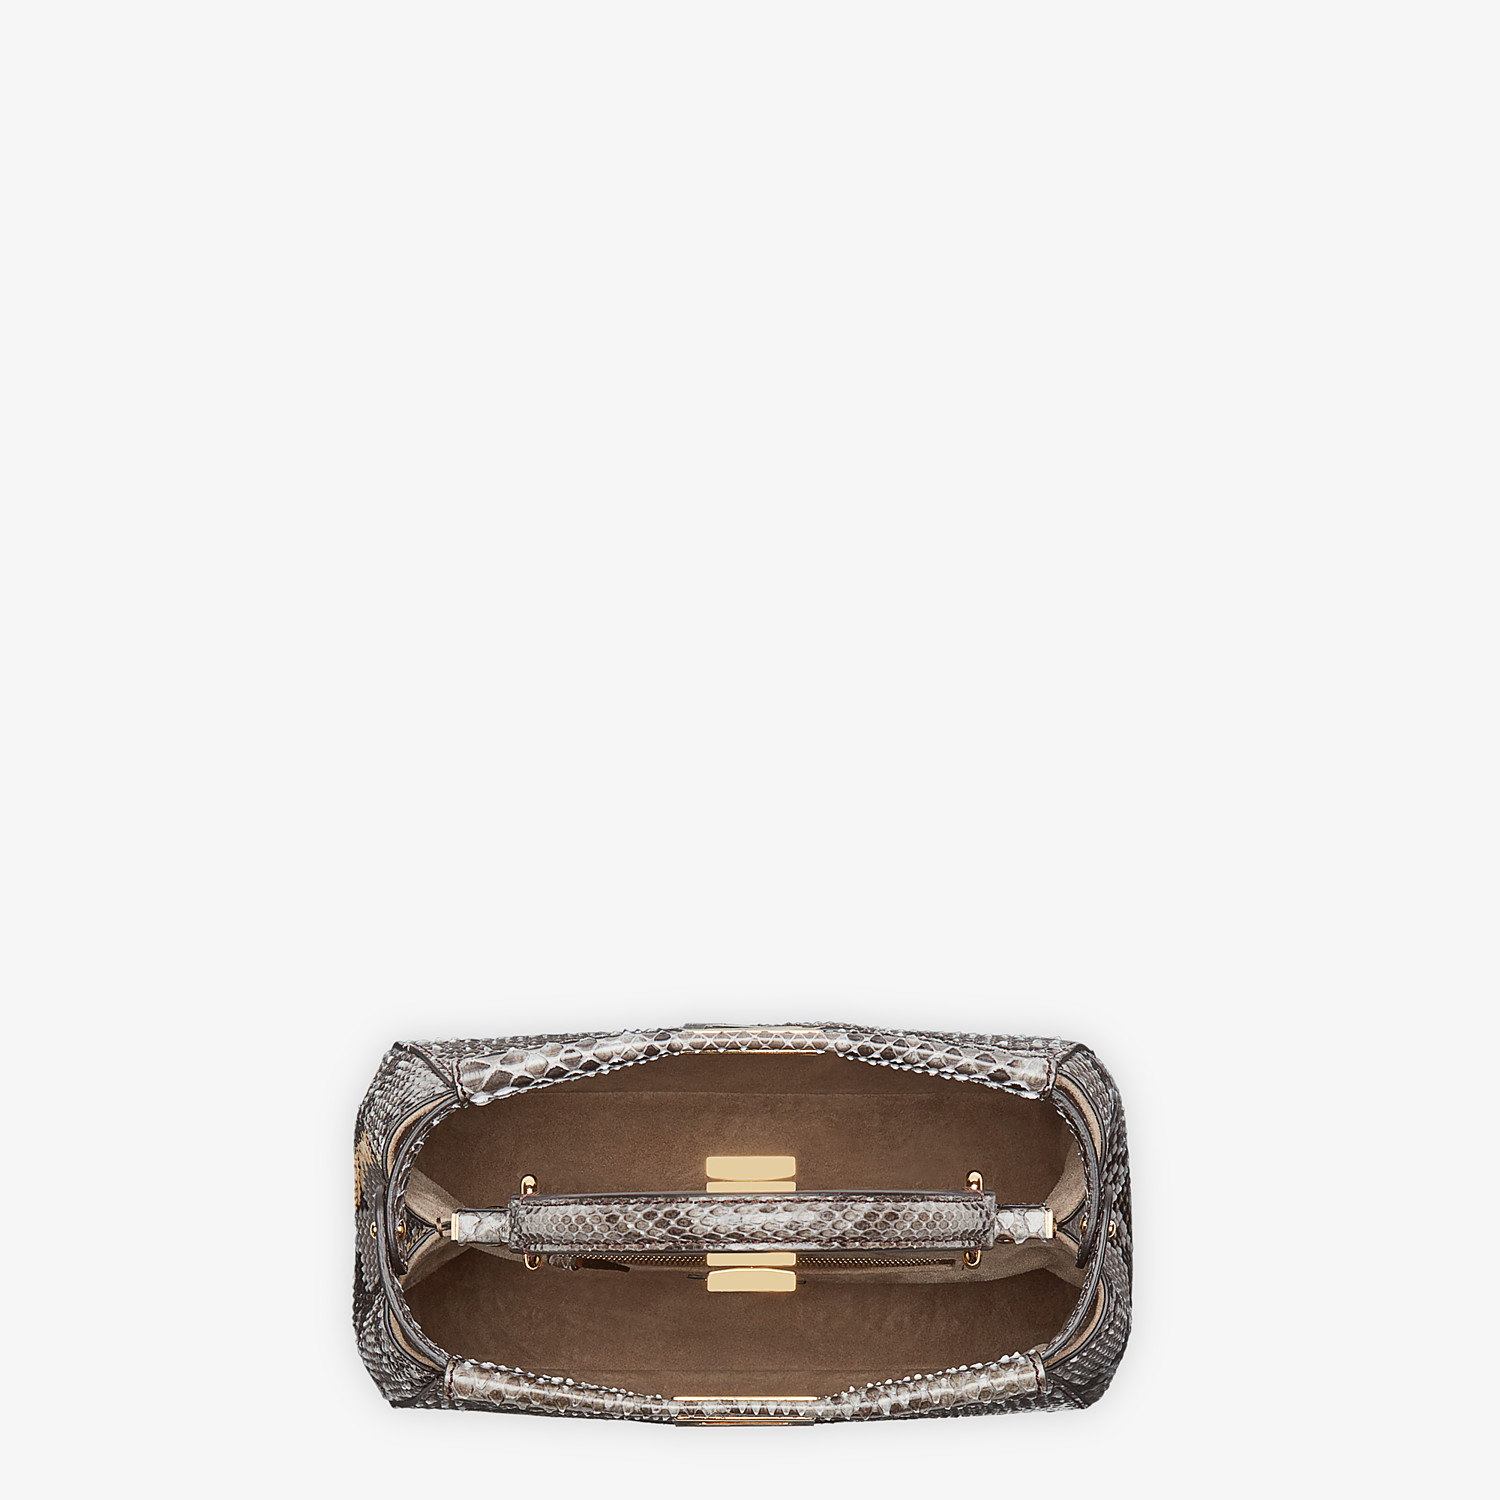 FENDI PEEKABOO ICONIC MINI - Gray python bag - view 4 detail